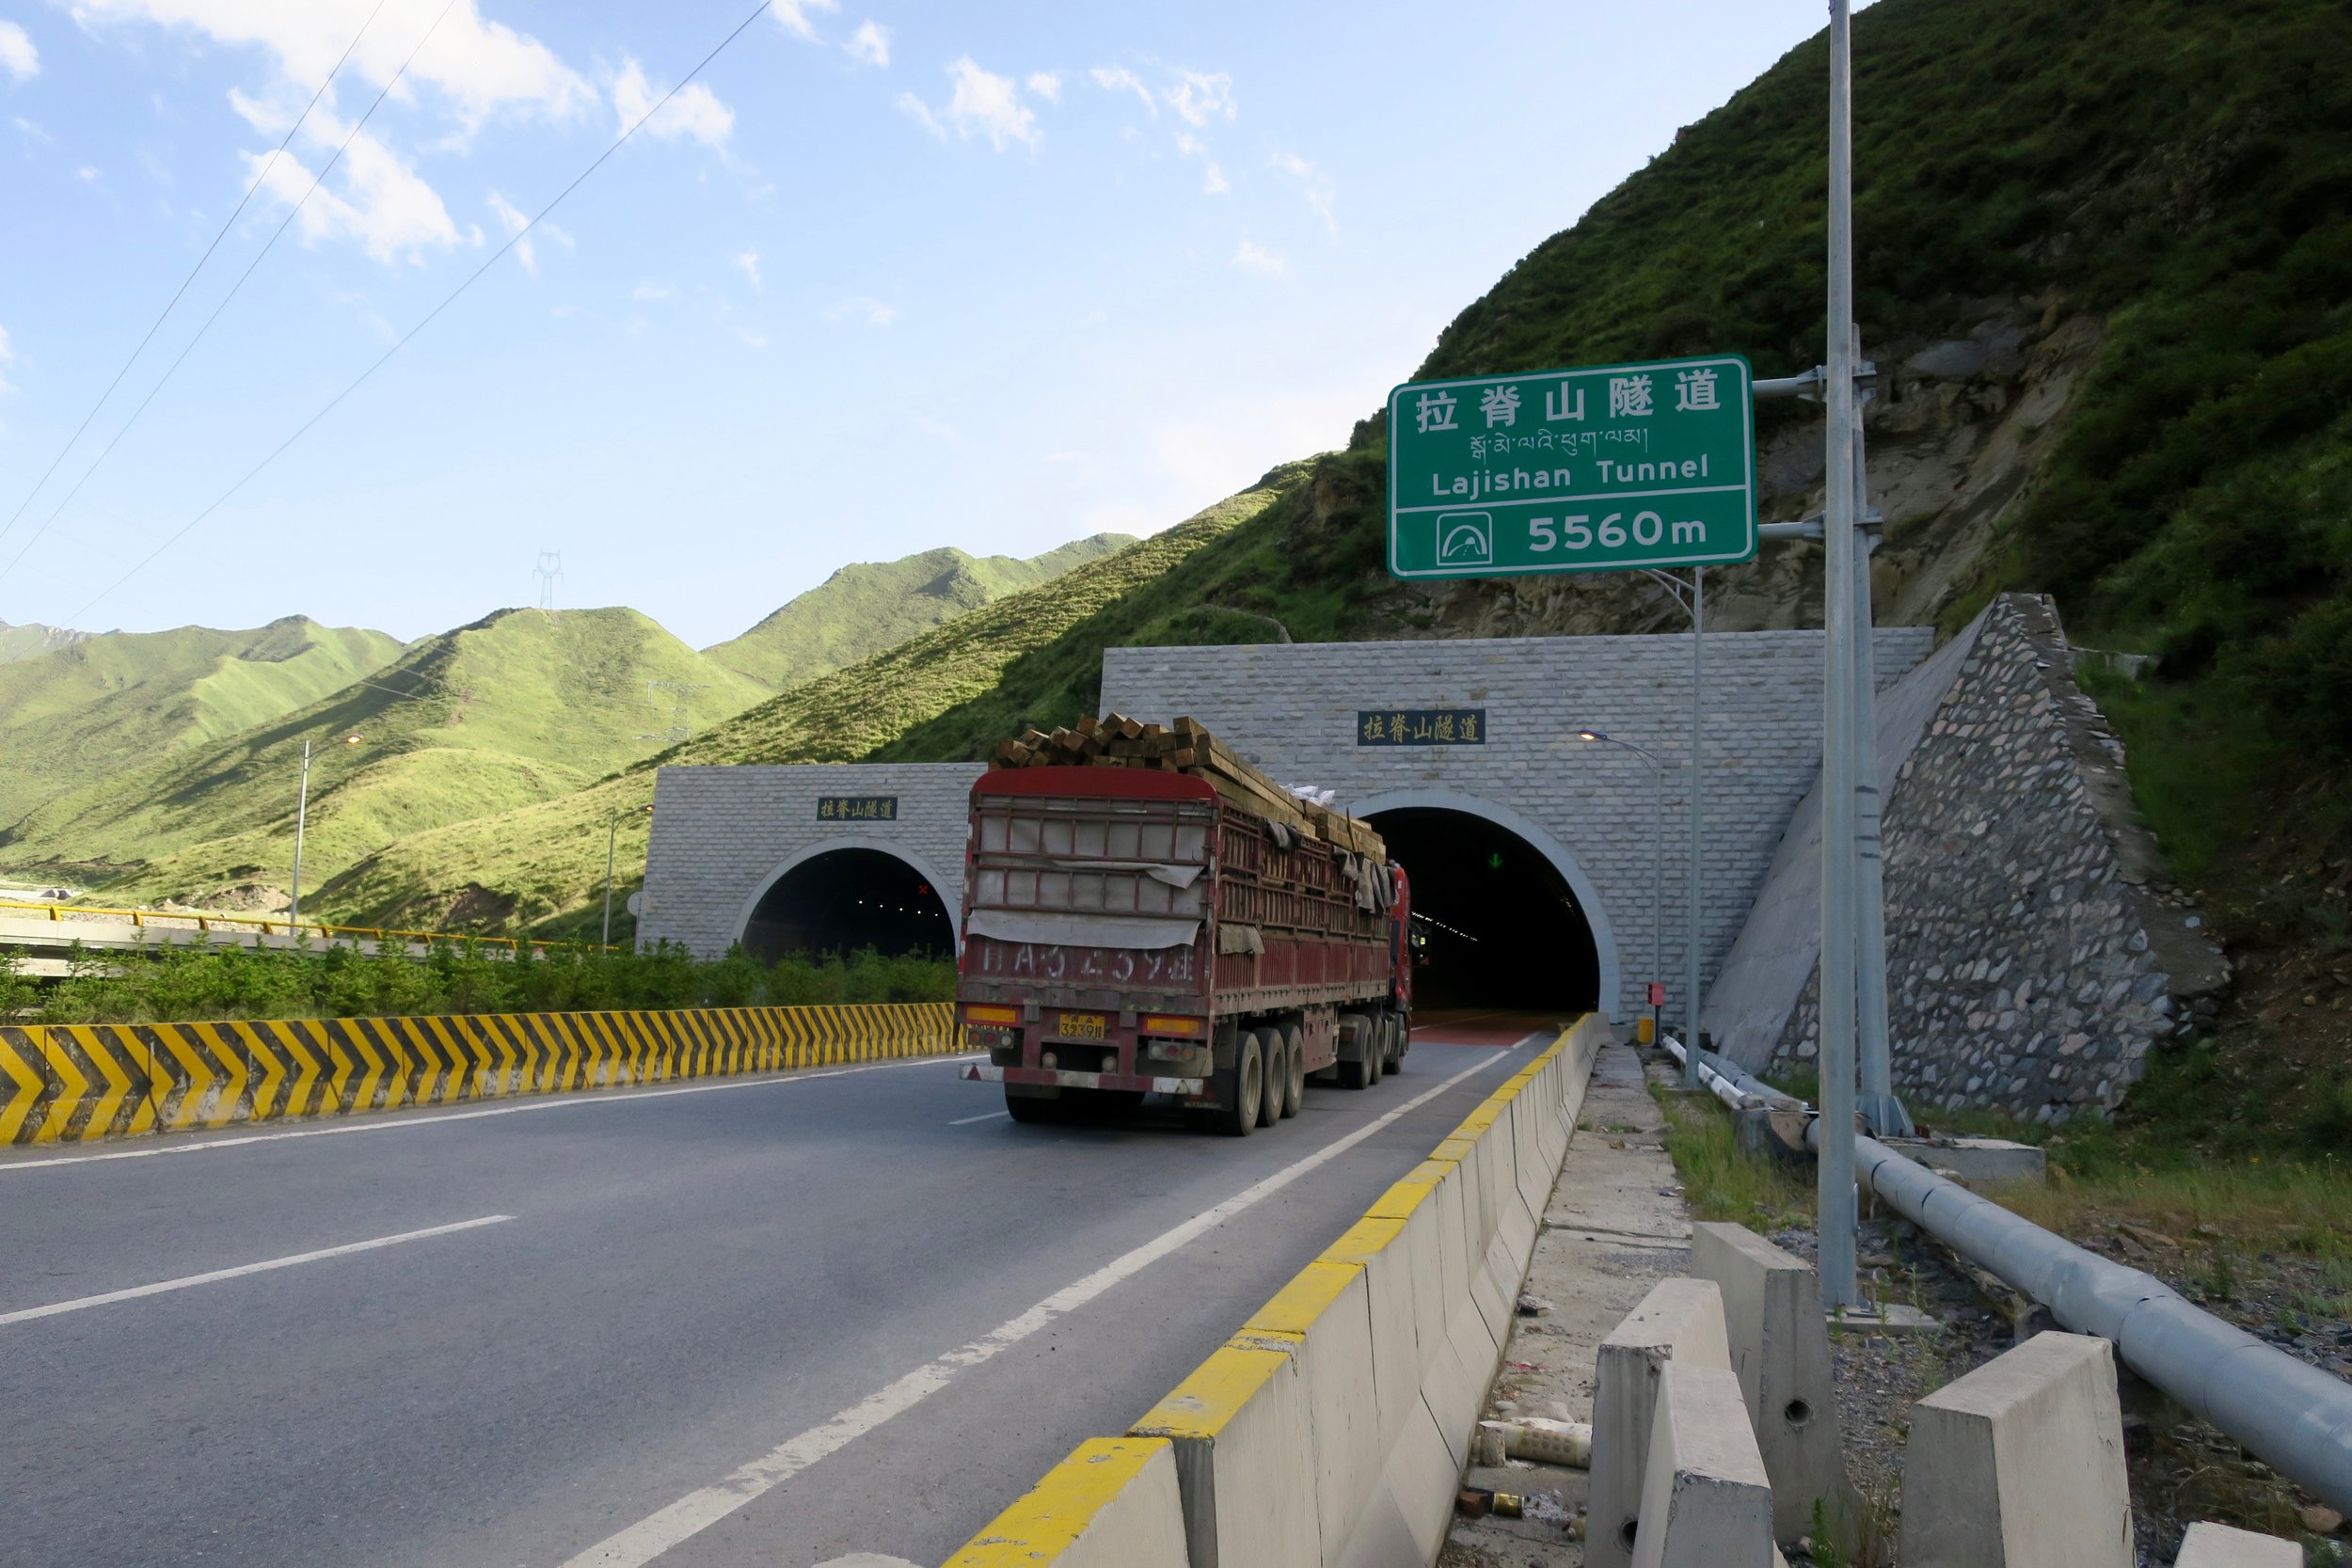 China loves to build tunnels. I've been though a lot of them in my short time here. But I've never experienced one 3.45 miles long. White knuckles for sure! Also probably lost a lot of brain cells from the fumes